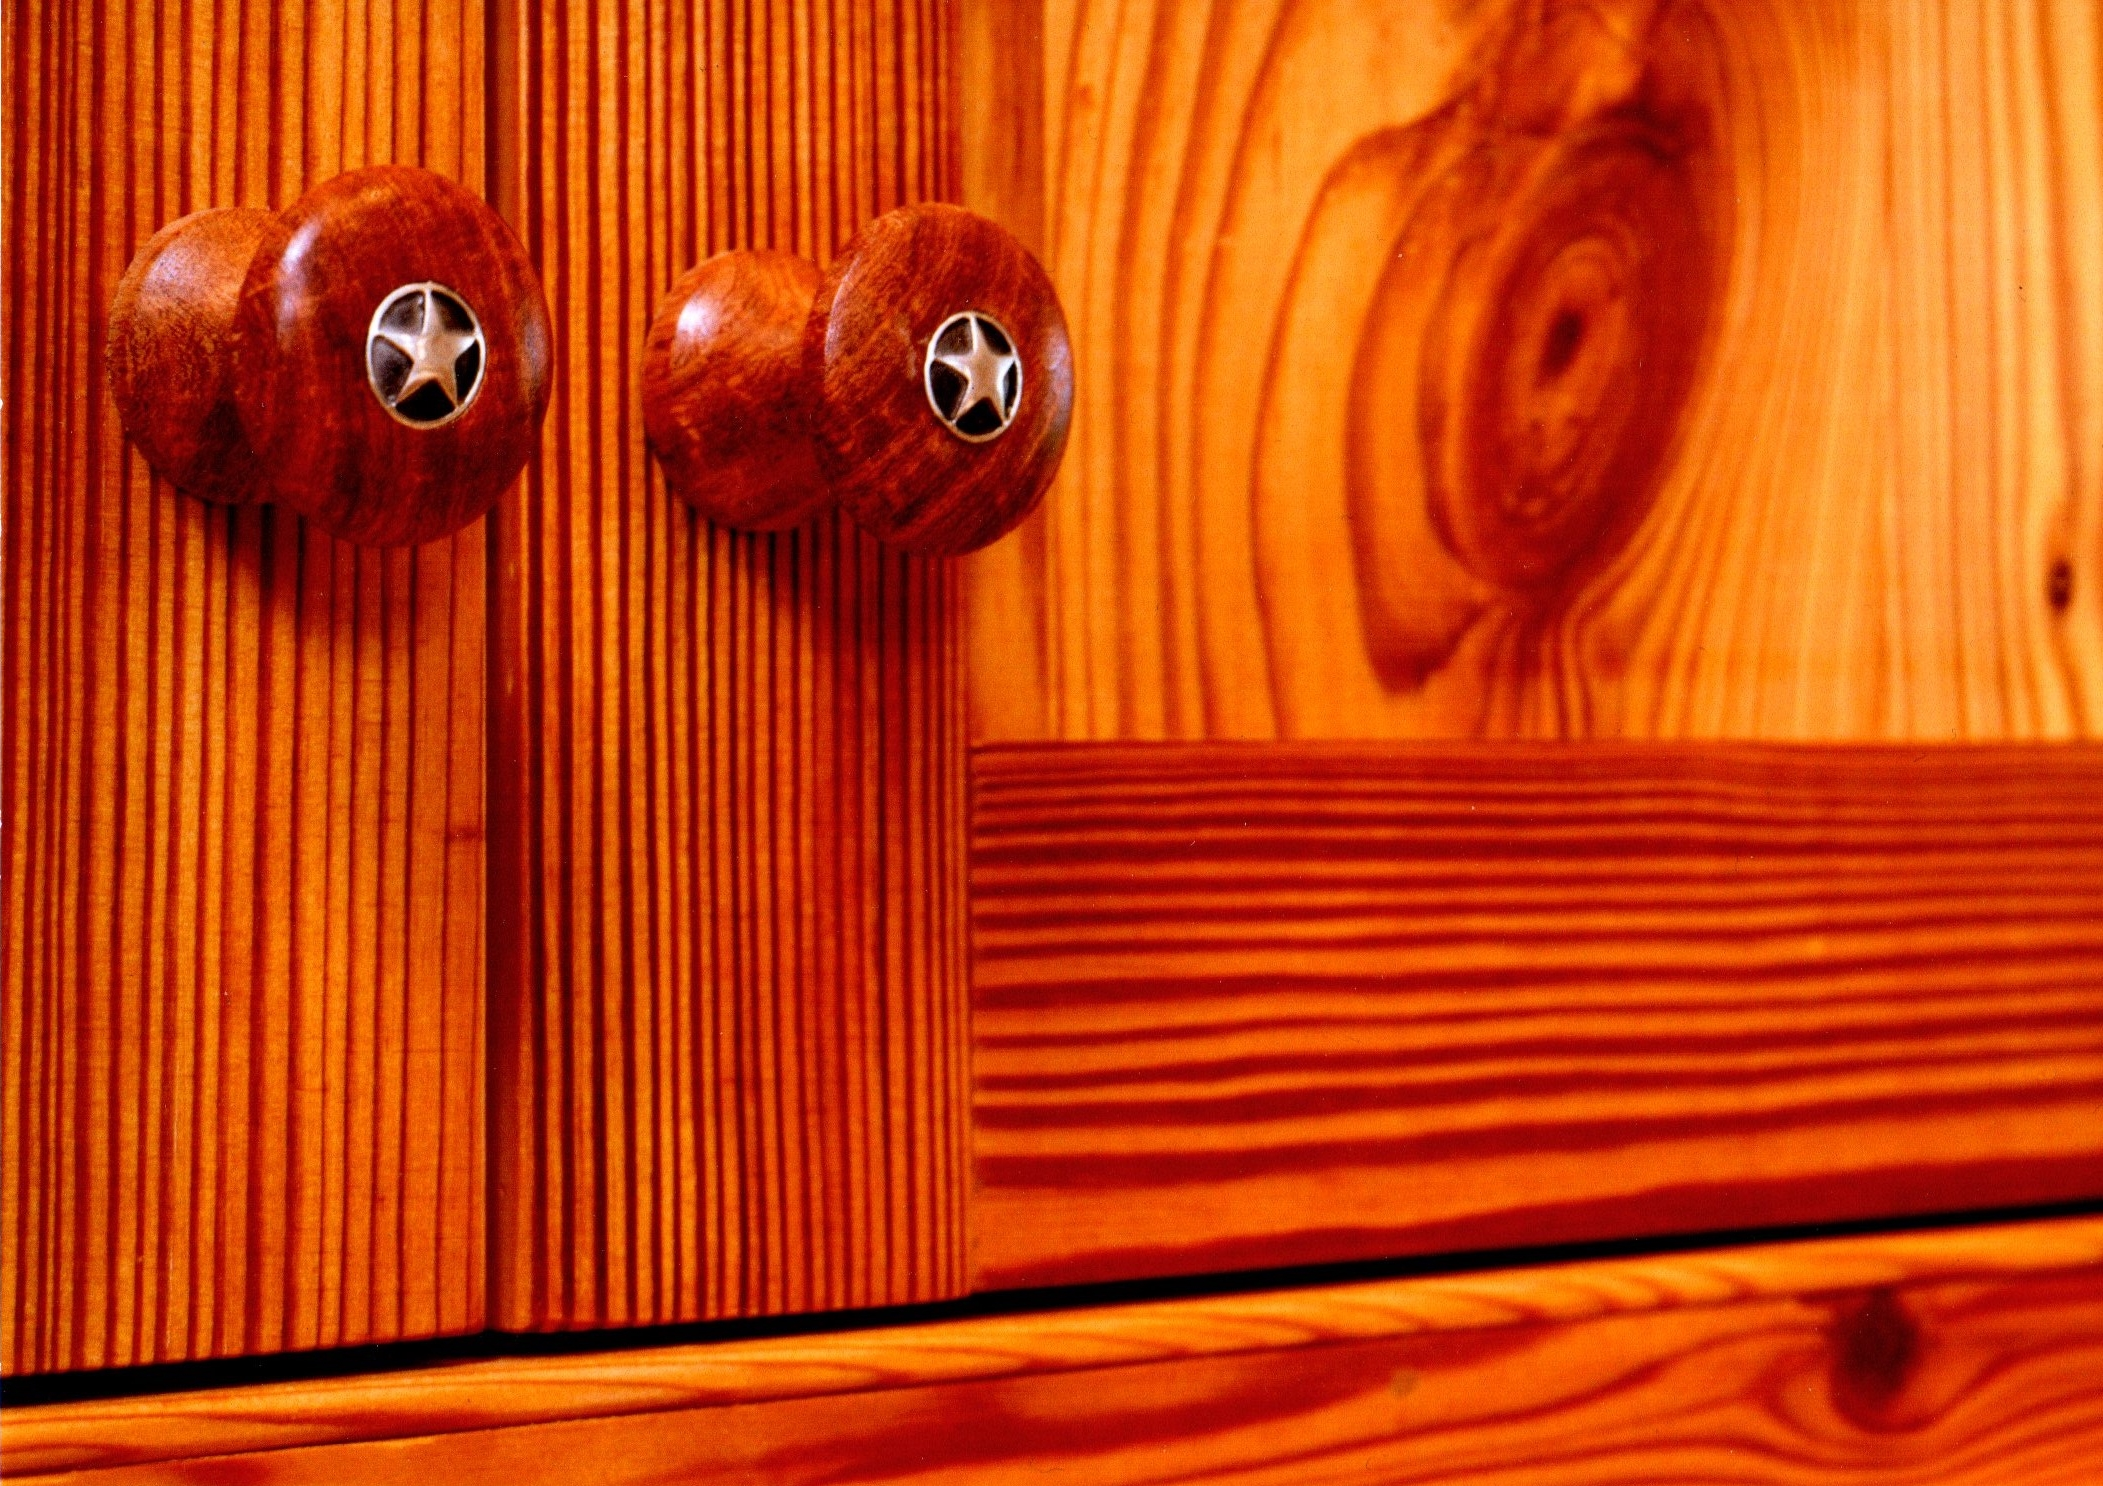 Texas, Colorado, Oklahoma Architect, Architecture firm. Custom Knobs Handles Cabinets Door Doors Concho Conchos